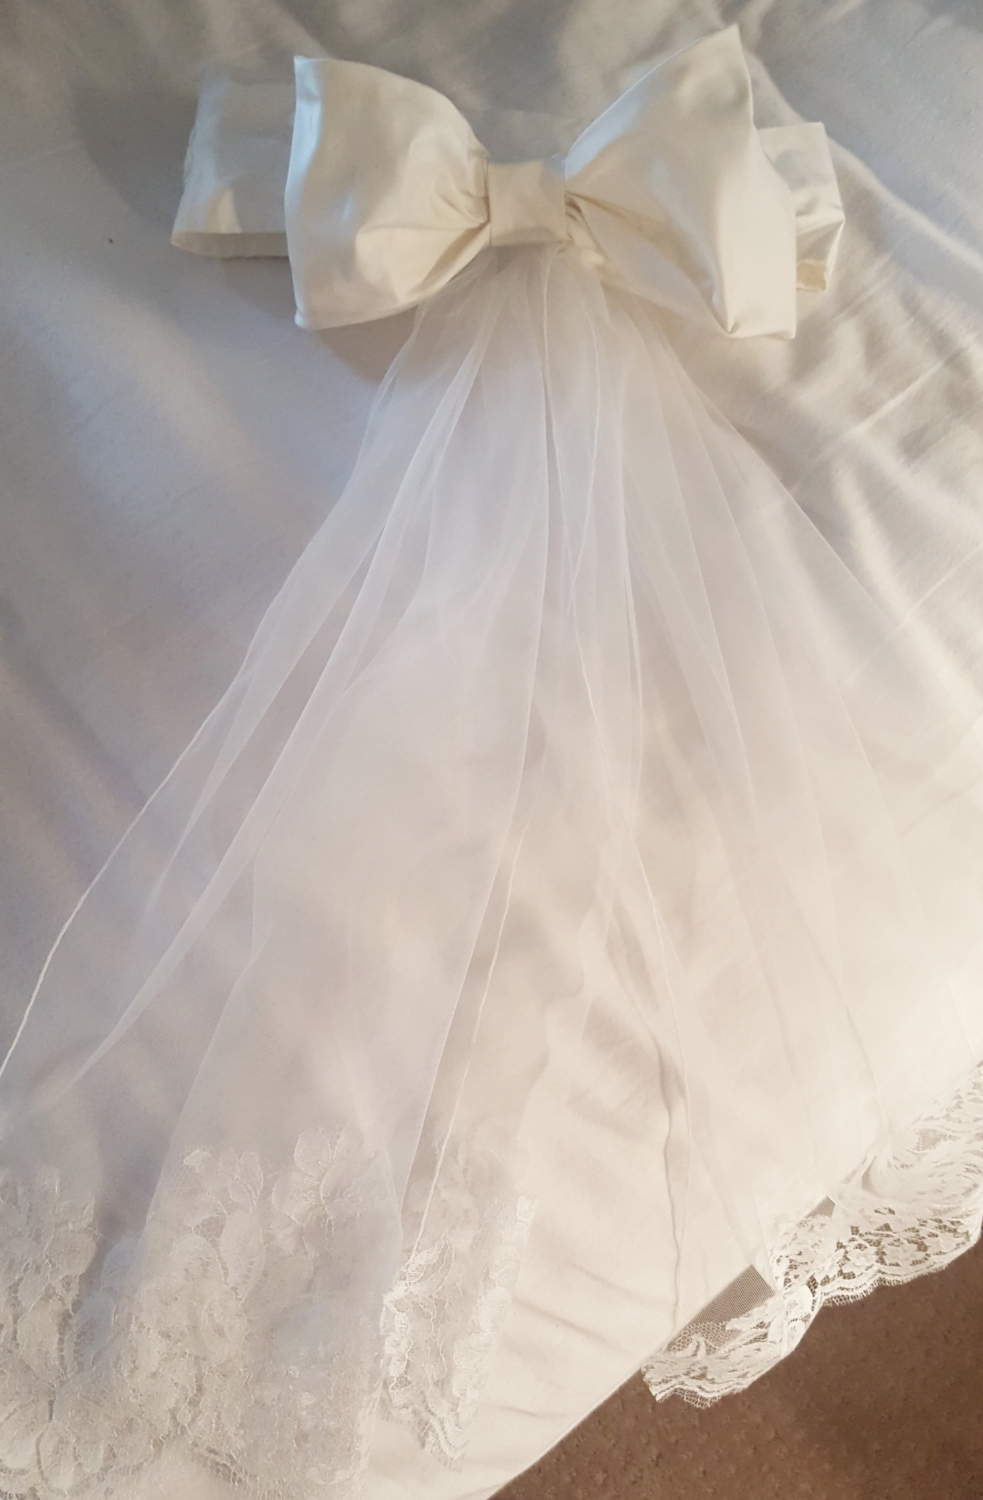 Lea-Ann Belter was so kind to provide us with a tiny piece of lace from Brielle's wedding gown bodice to create a custom sash for Abbey's flower girl dress. The tails of the sash were made from the same silky netting and French lace I used to design Brielle's veil.